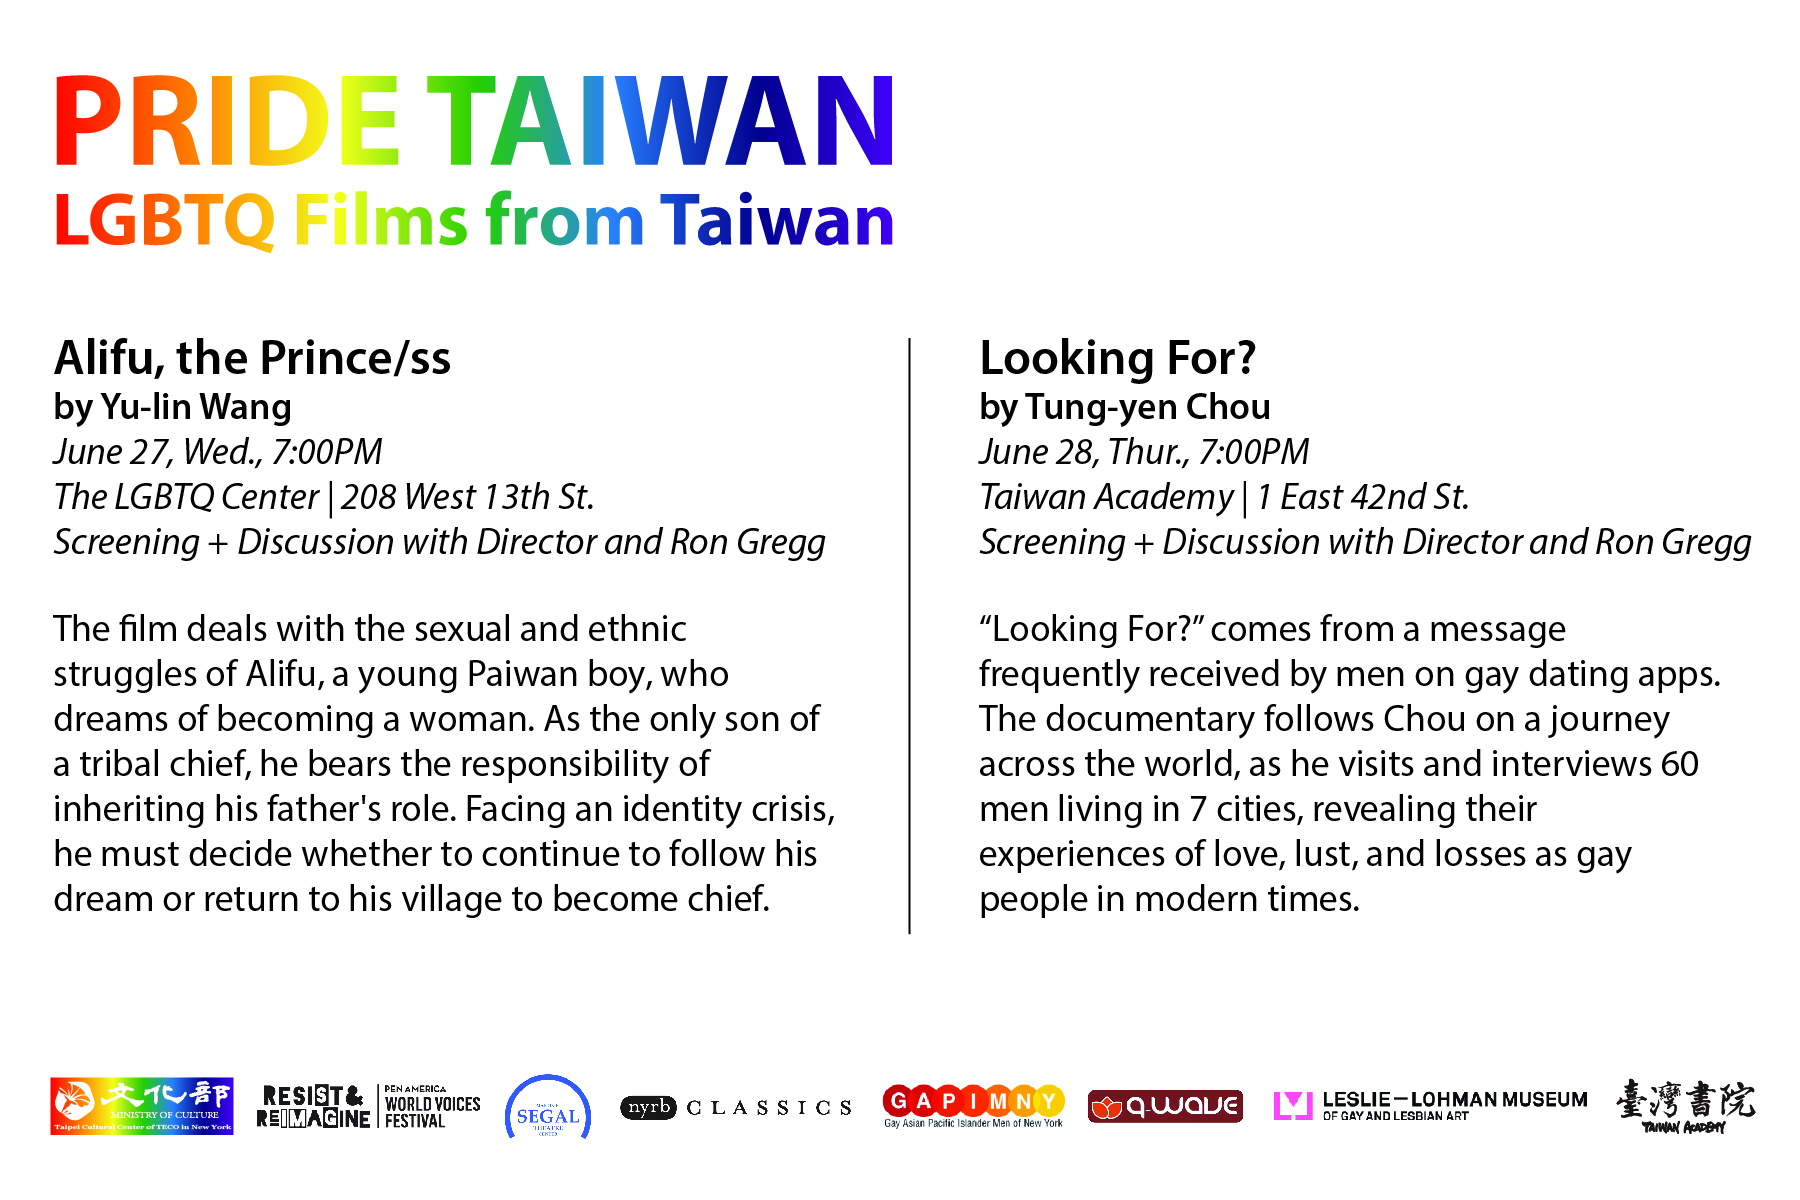 Pride Taiwan: An evening of film screenings and play readings